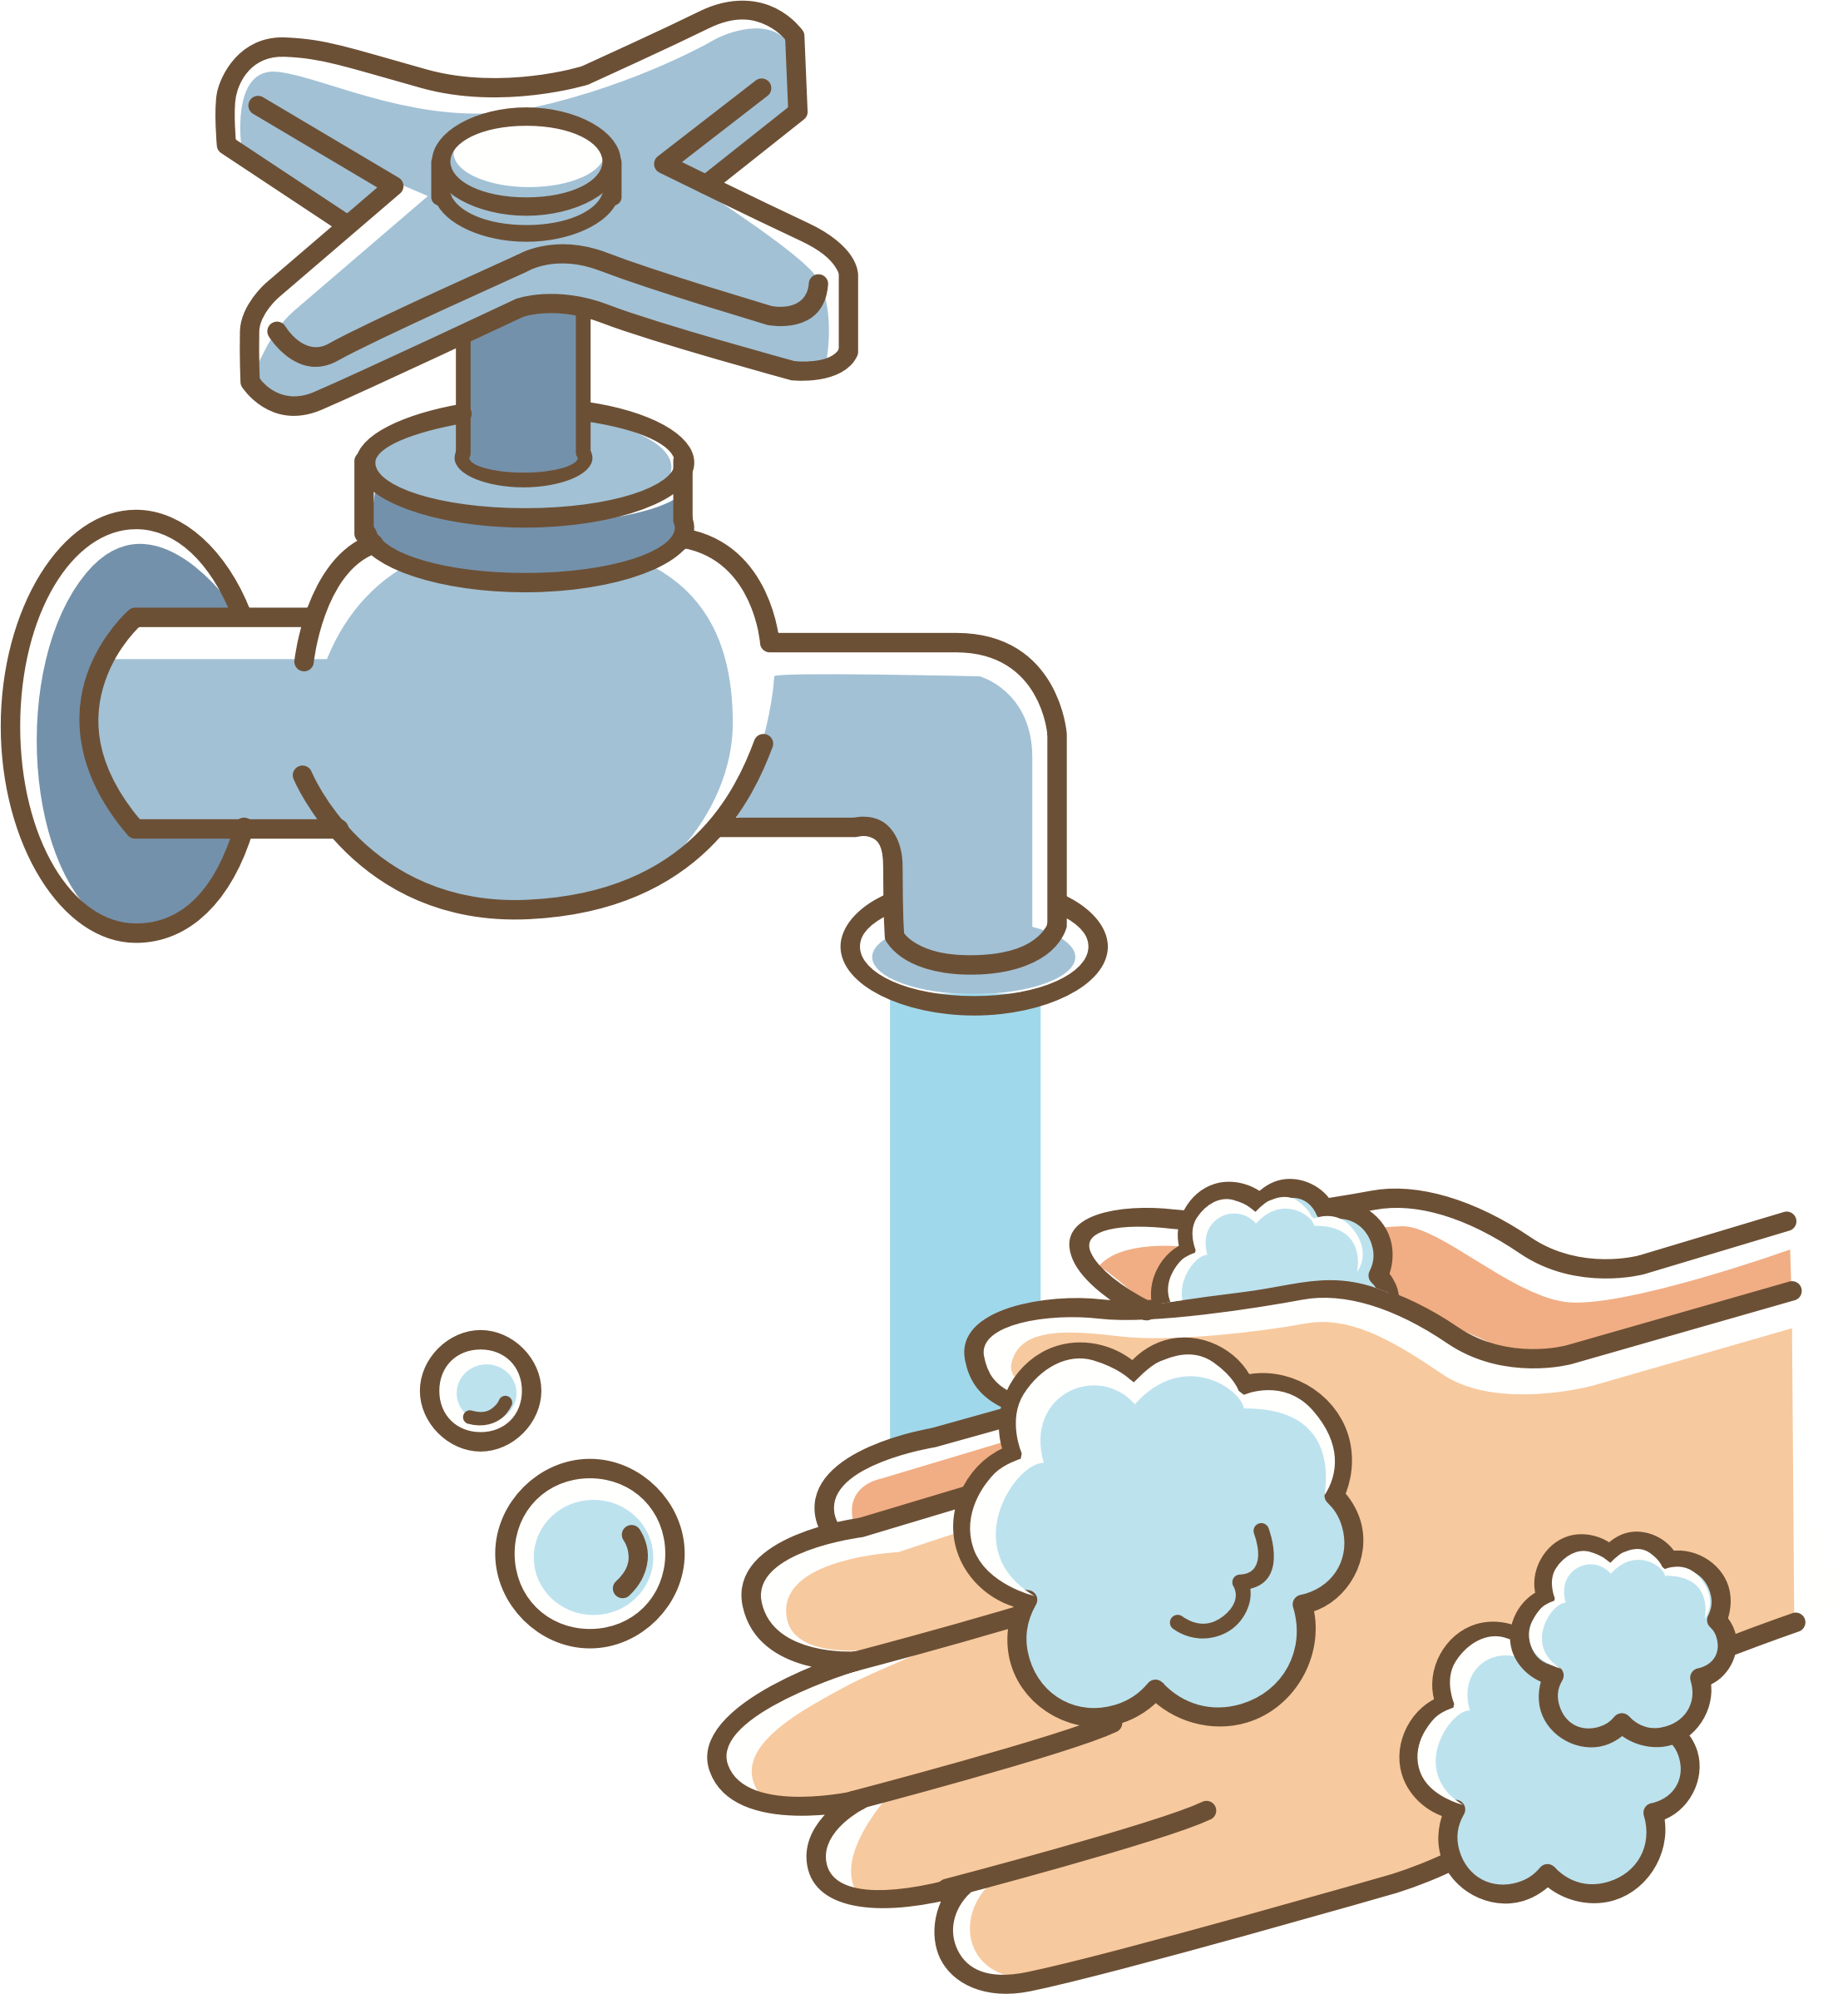 Washing hand clipart clipart royalty free download Clipart - Wash your hands (#2) clipart royalty free download